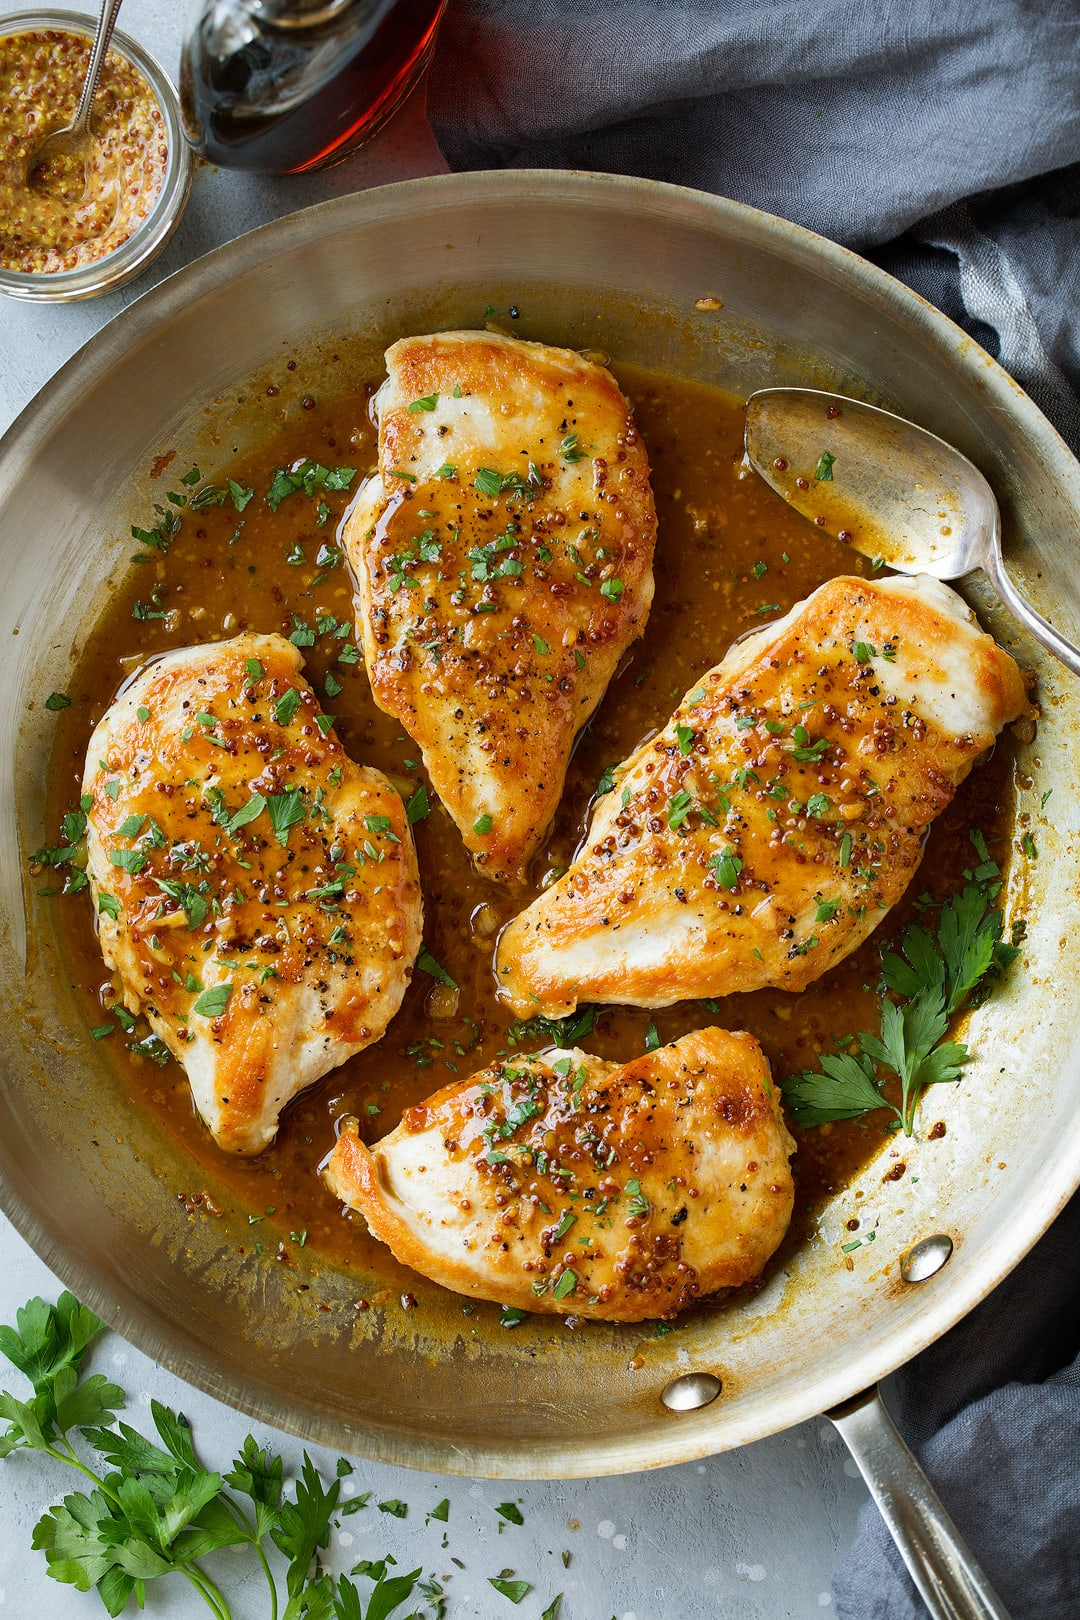 Skillet Chicken with Maple Mustard Sauce shown here in stainless steel 12-inch skillet.